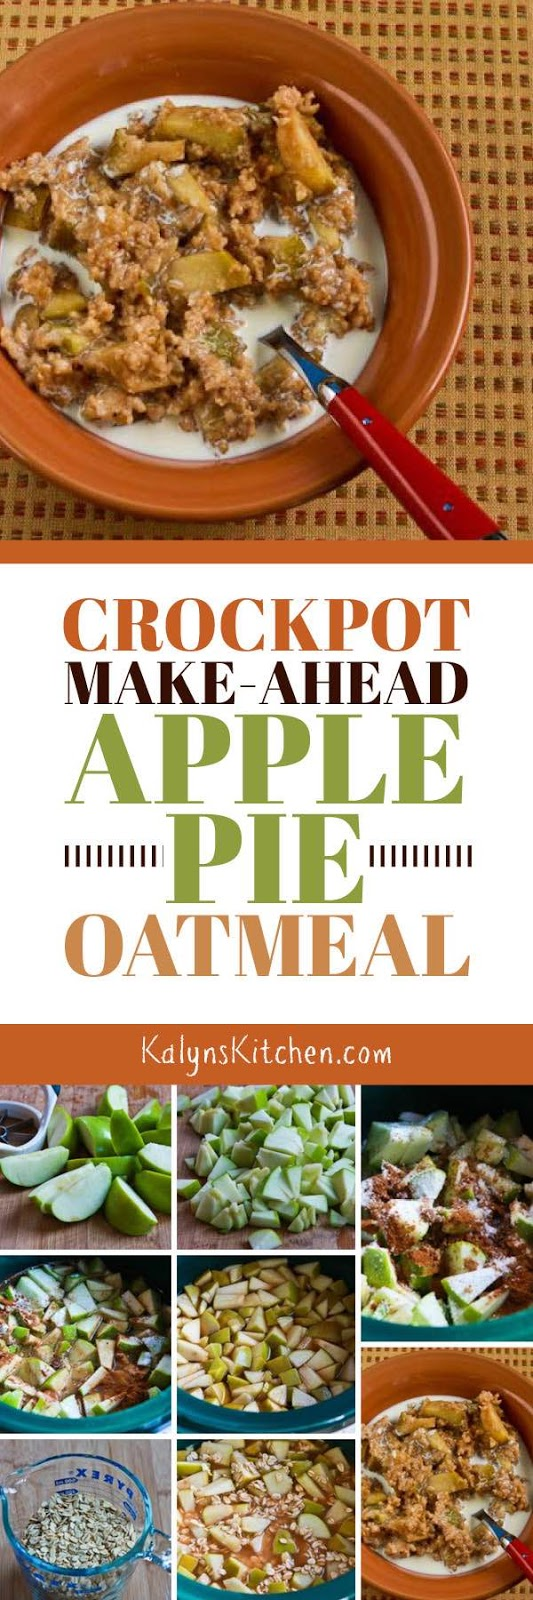 CrockPot Recipe for Make-Ahead Apple Pie Oatmeal found on ...